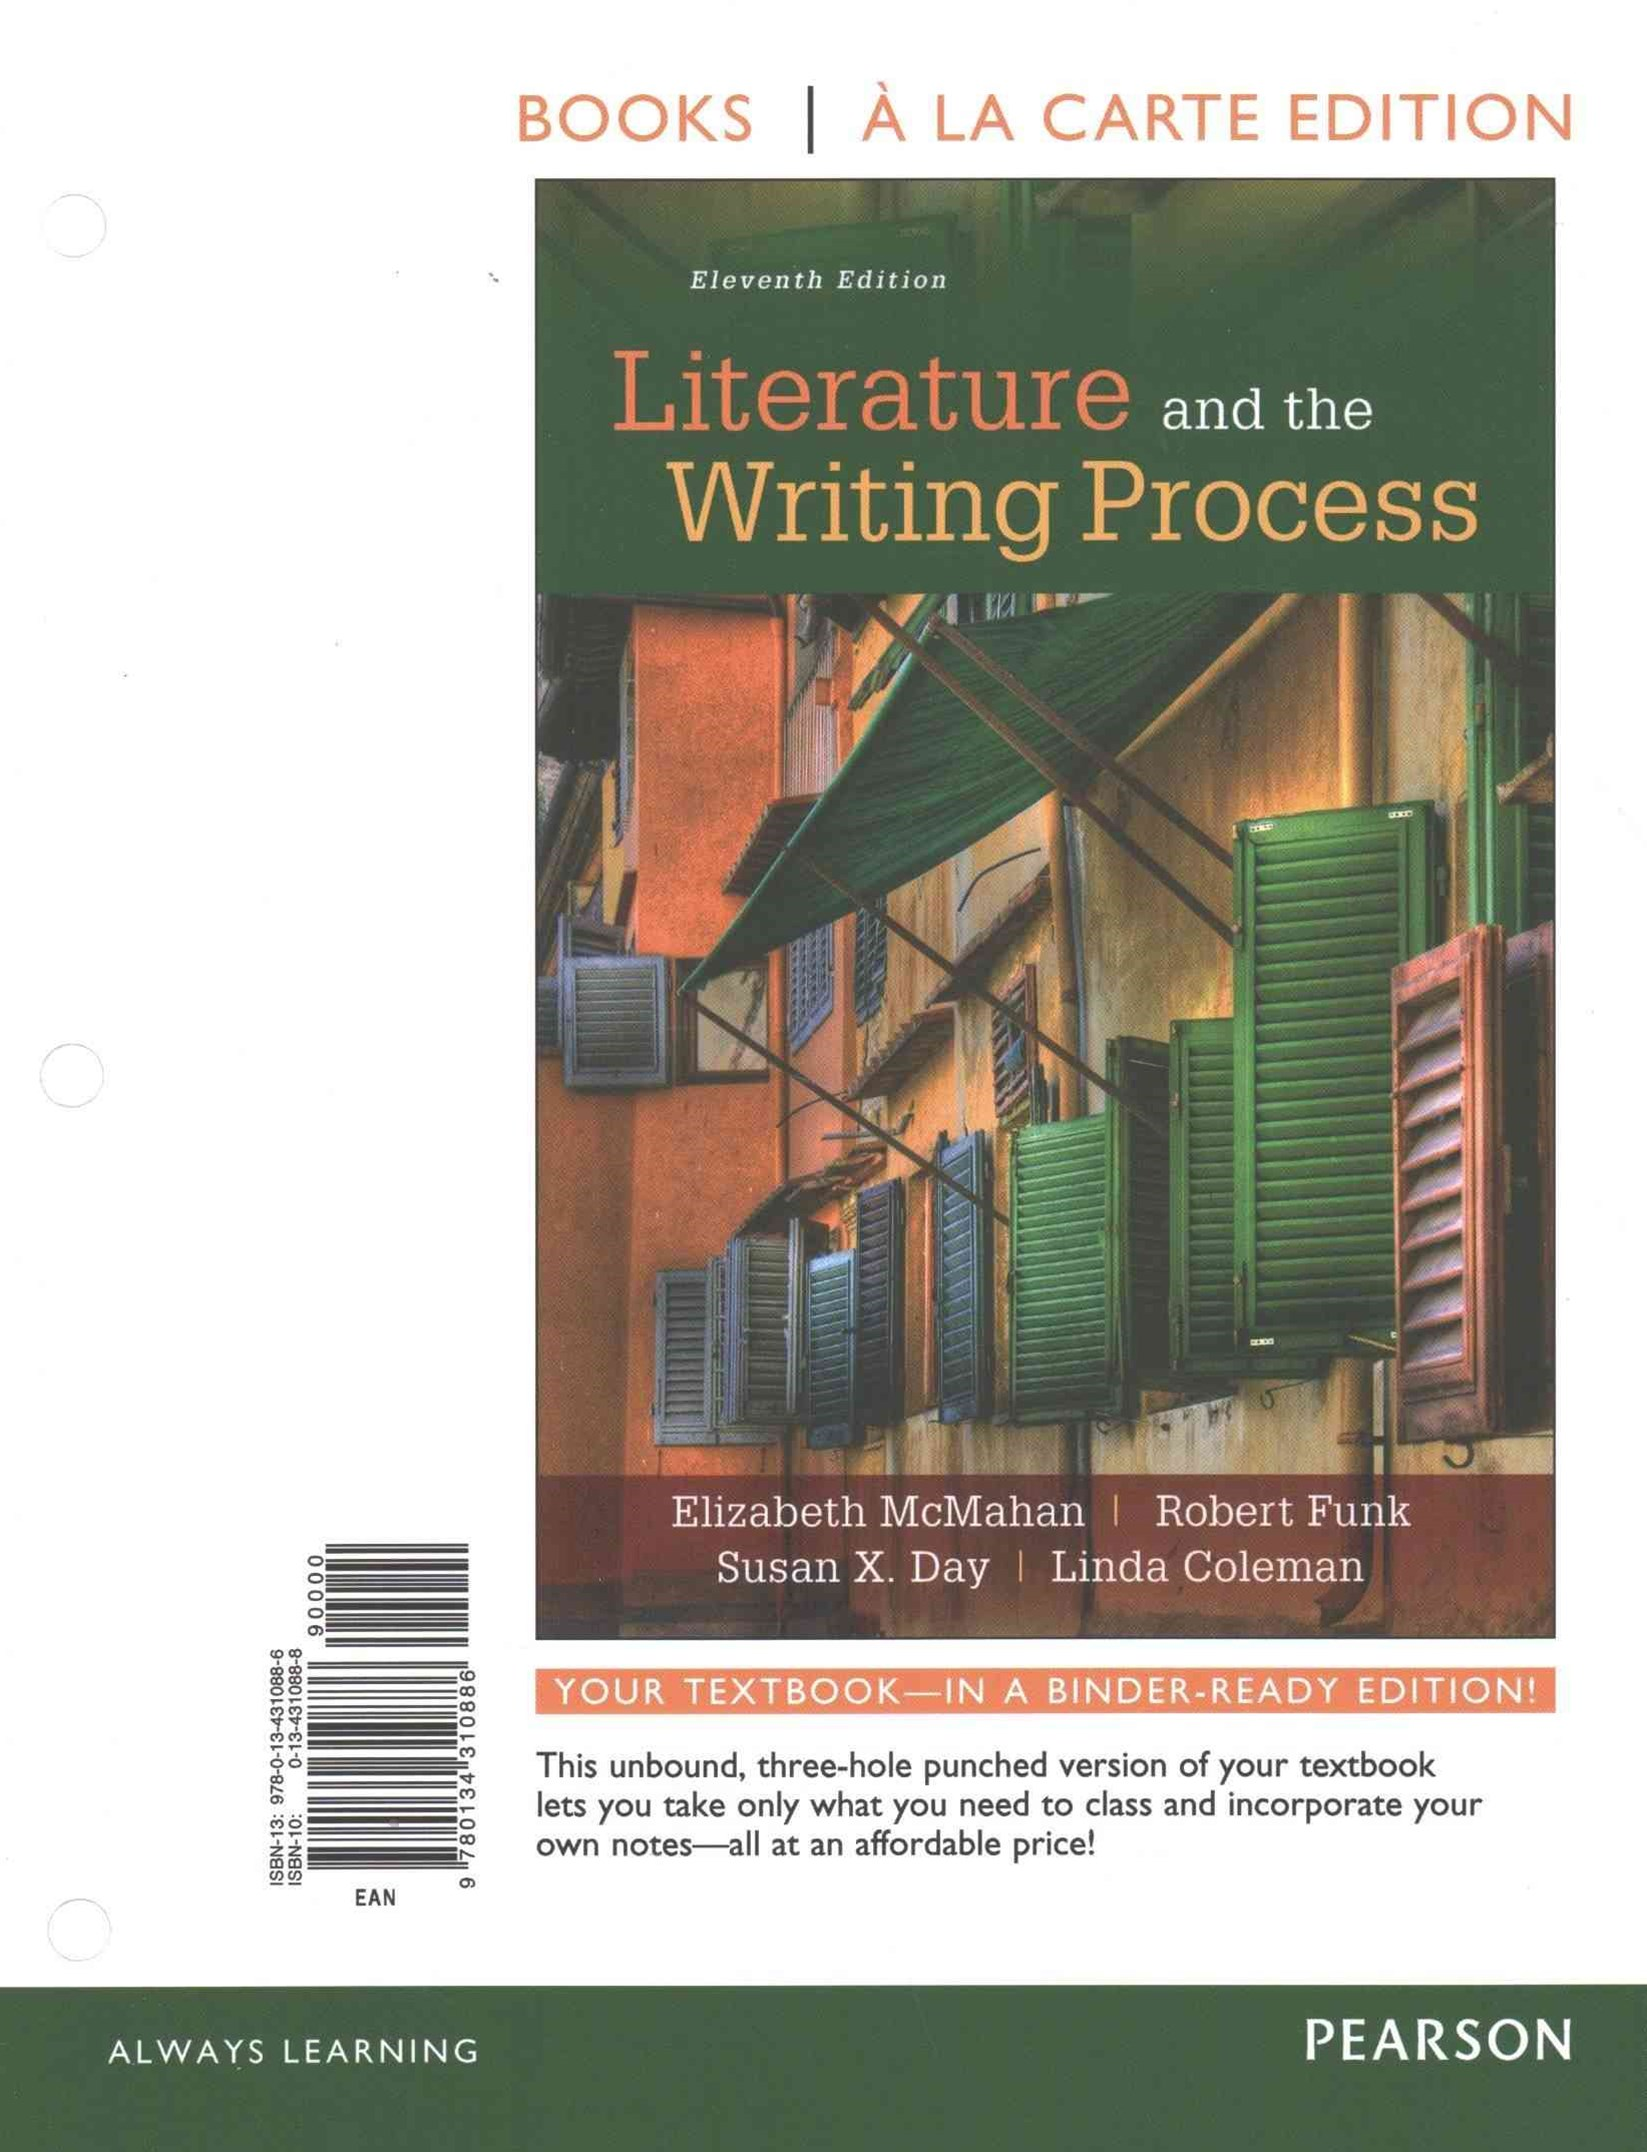 Literature and the Writing Process, Books a la Carte Plus REVEL -- Access Card Package